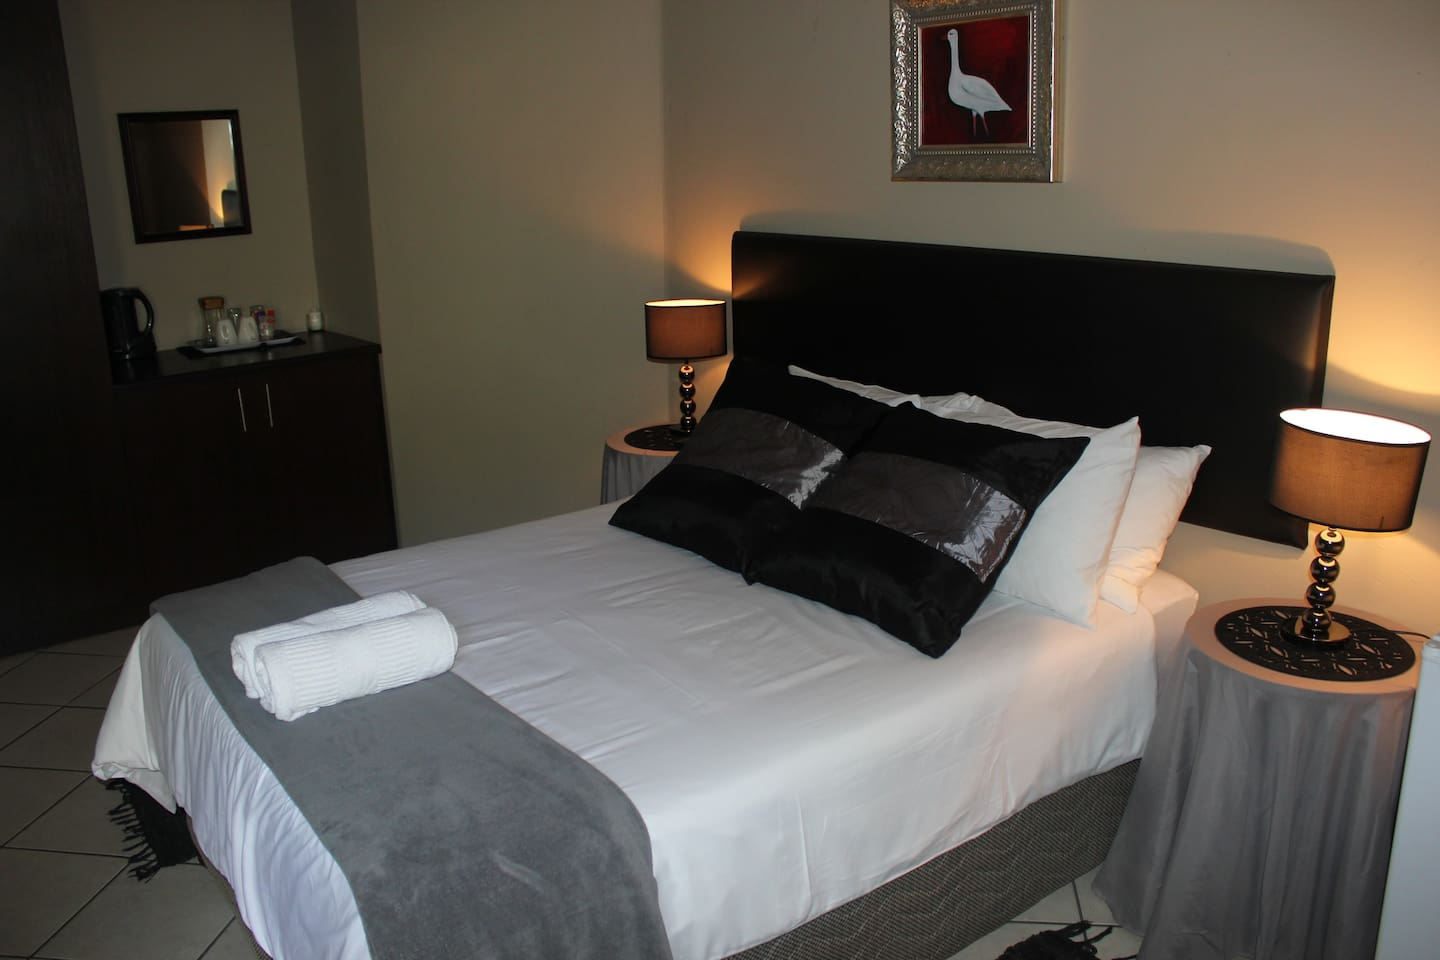 Room 5, double bed with en suite bathroom. TV, fridge and fan in the room. Coffee, tea and sugar is provided. This room has a view over the garden.